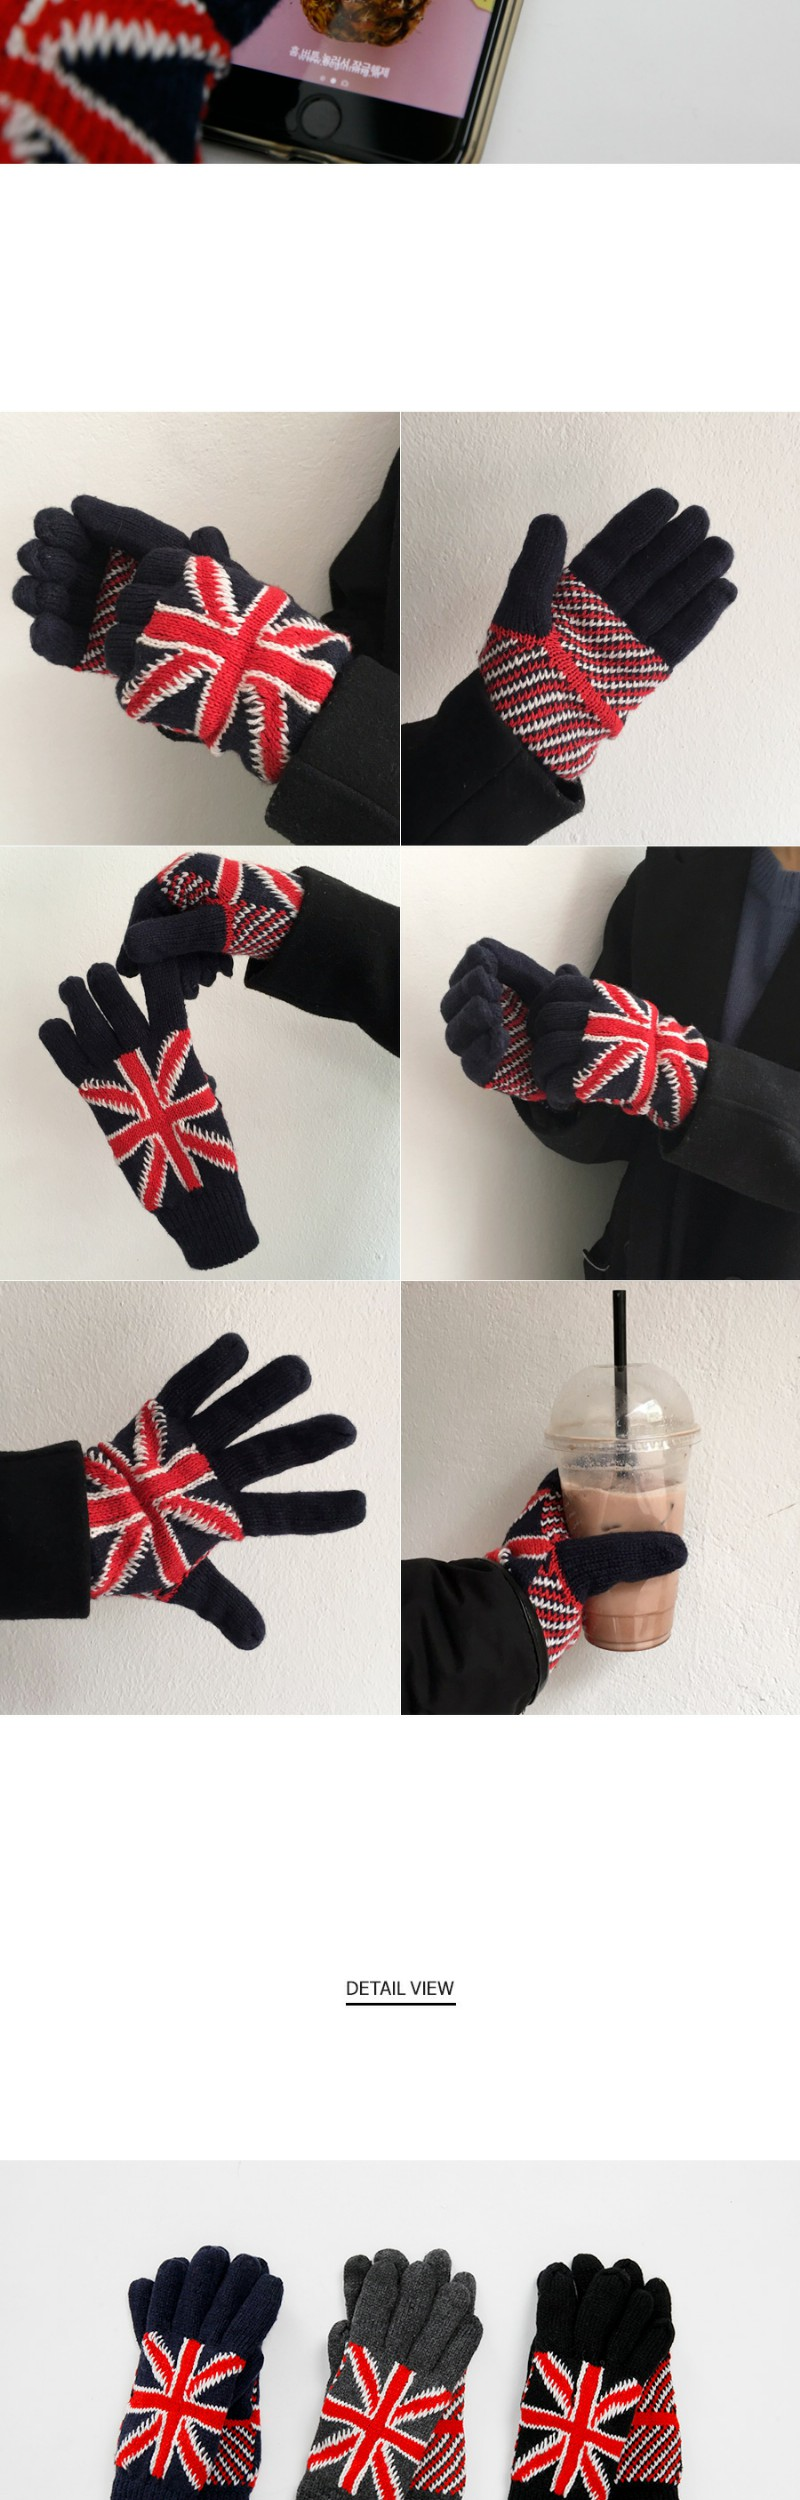 London smart touch glove_K(size : one)